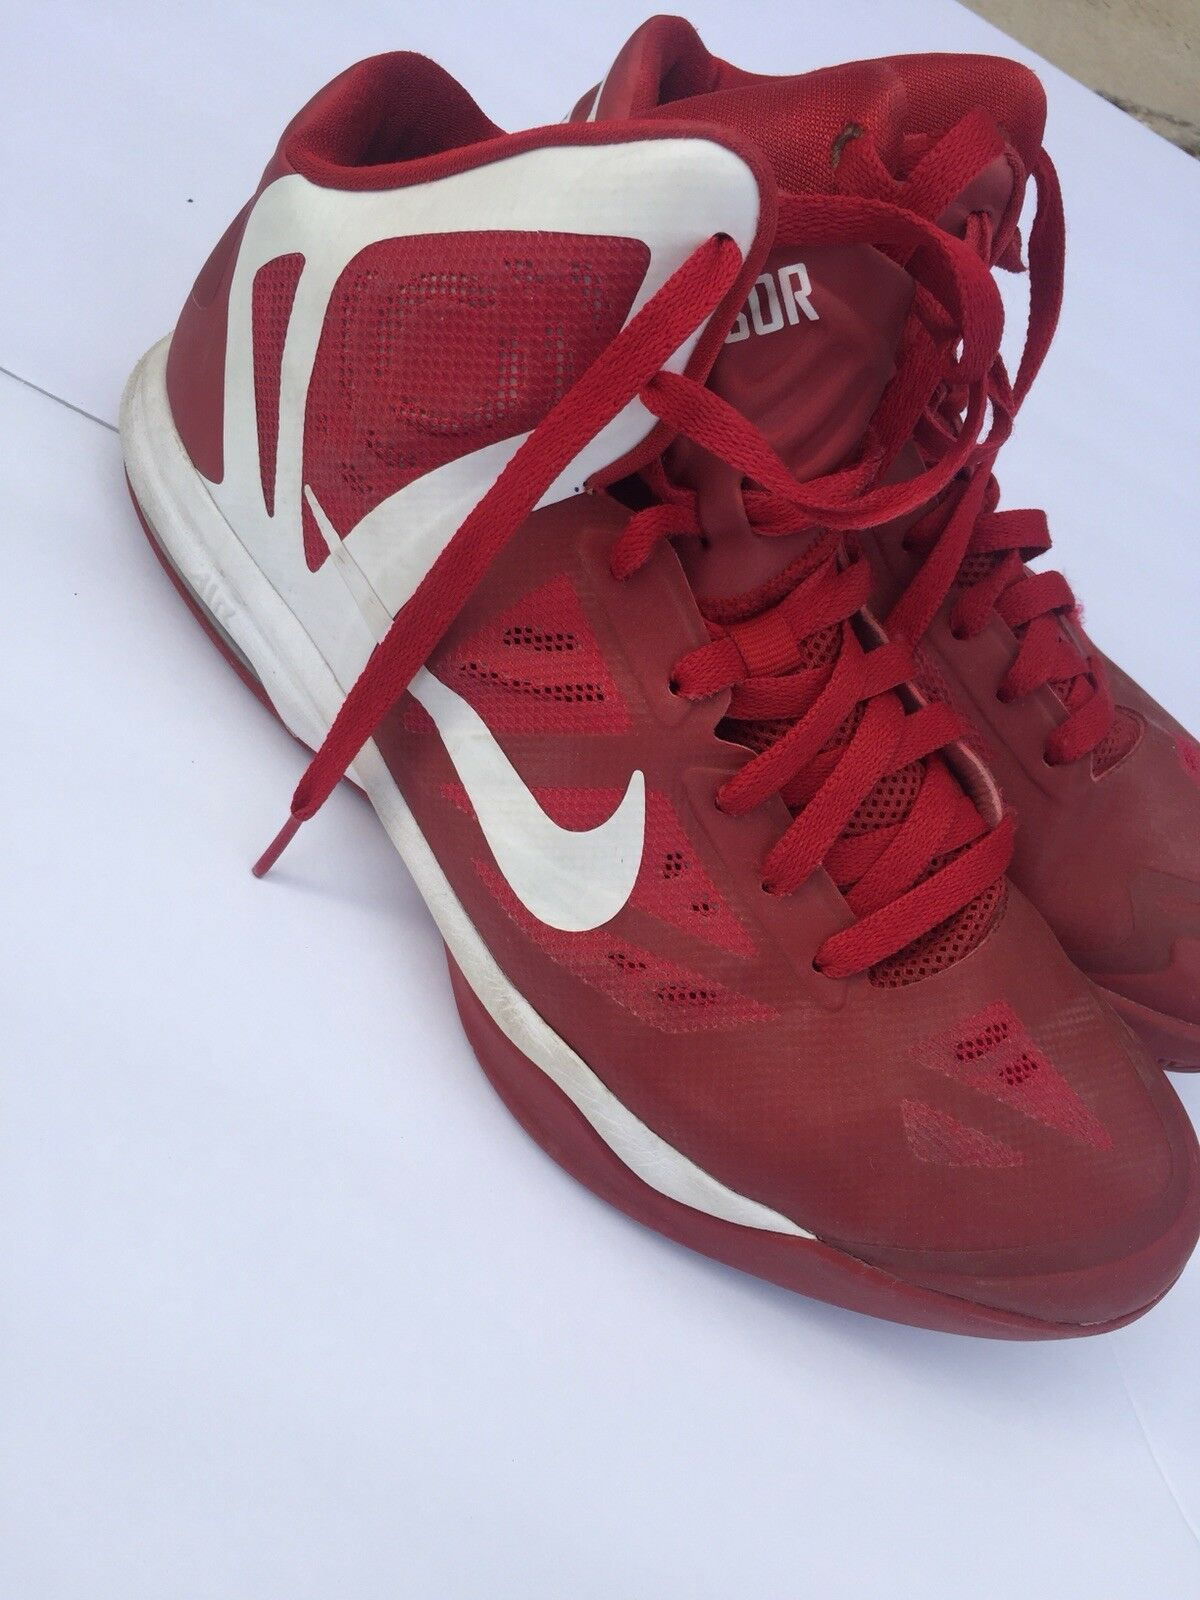 Mens Nike Air max hyper aggressor RED  The most popular shoes for men and women